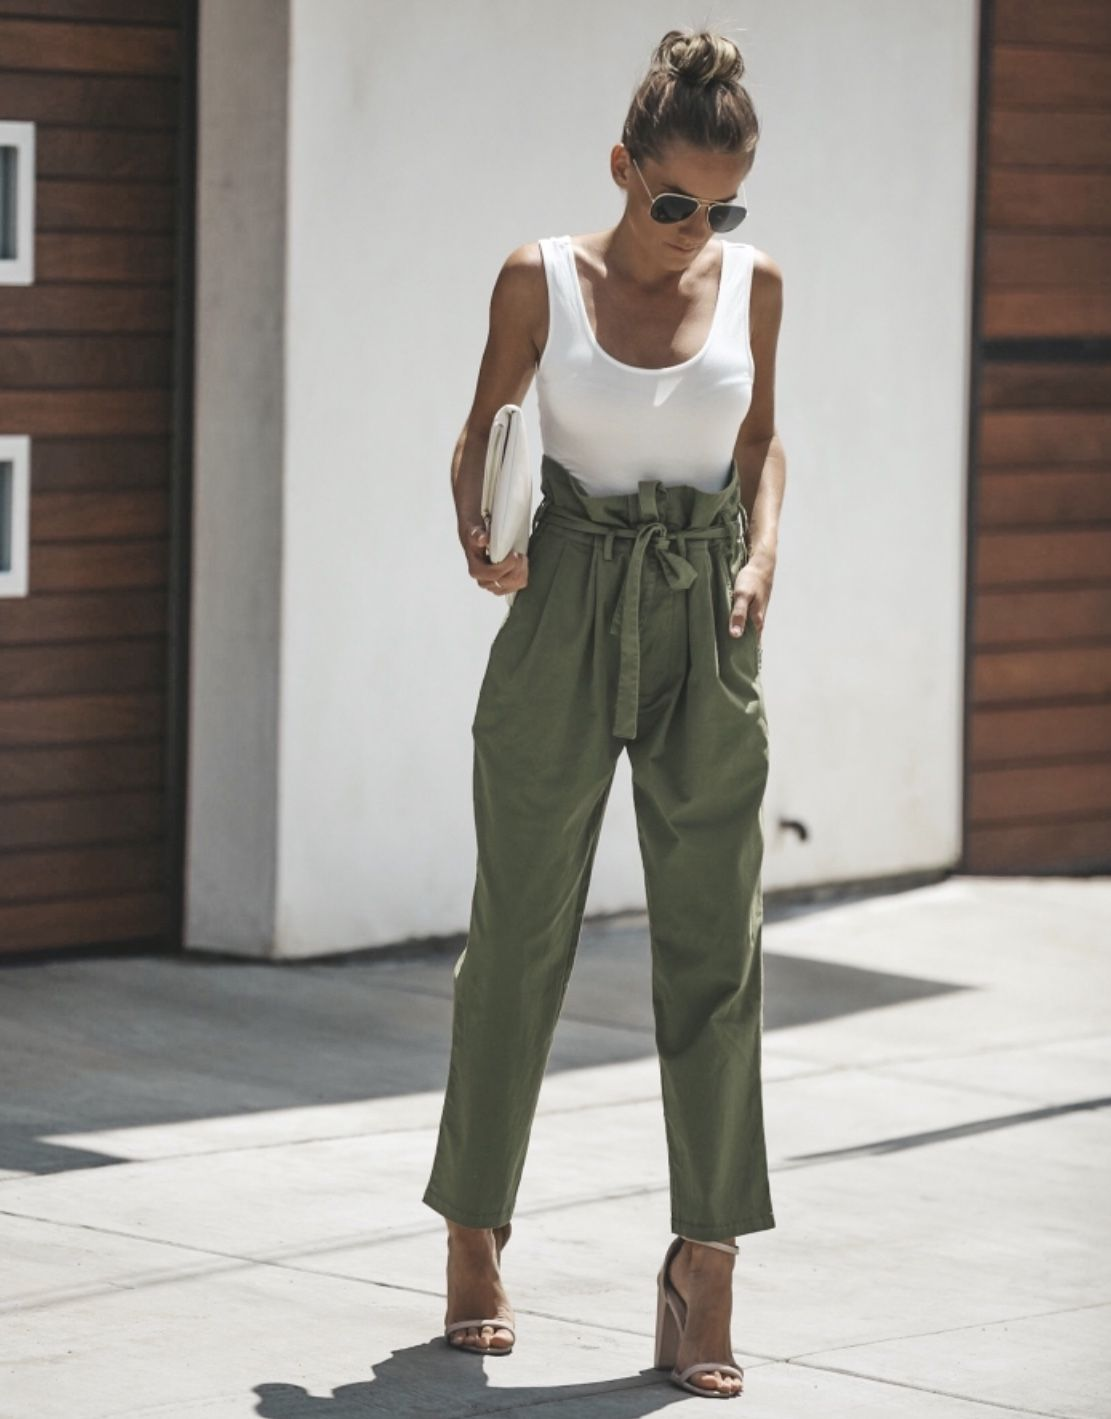 Vici Army Green Hudson Overalls Army Green Pants Outfit Army Pants Outfit Green Dress Pants [ 1419 x 1111 Pixel ]